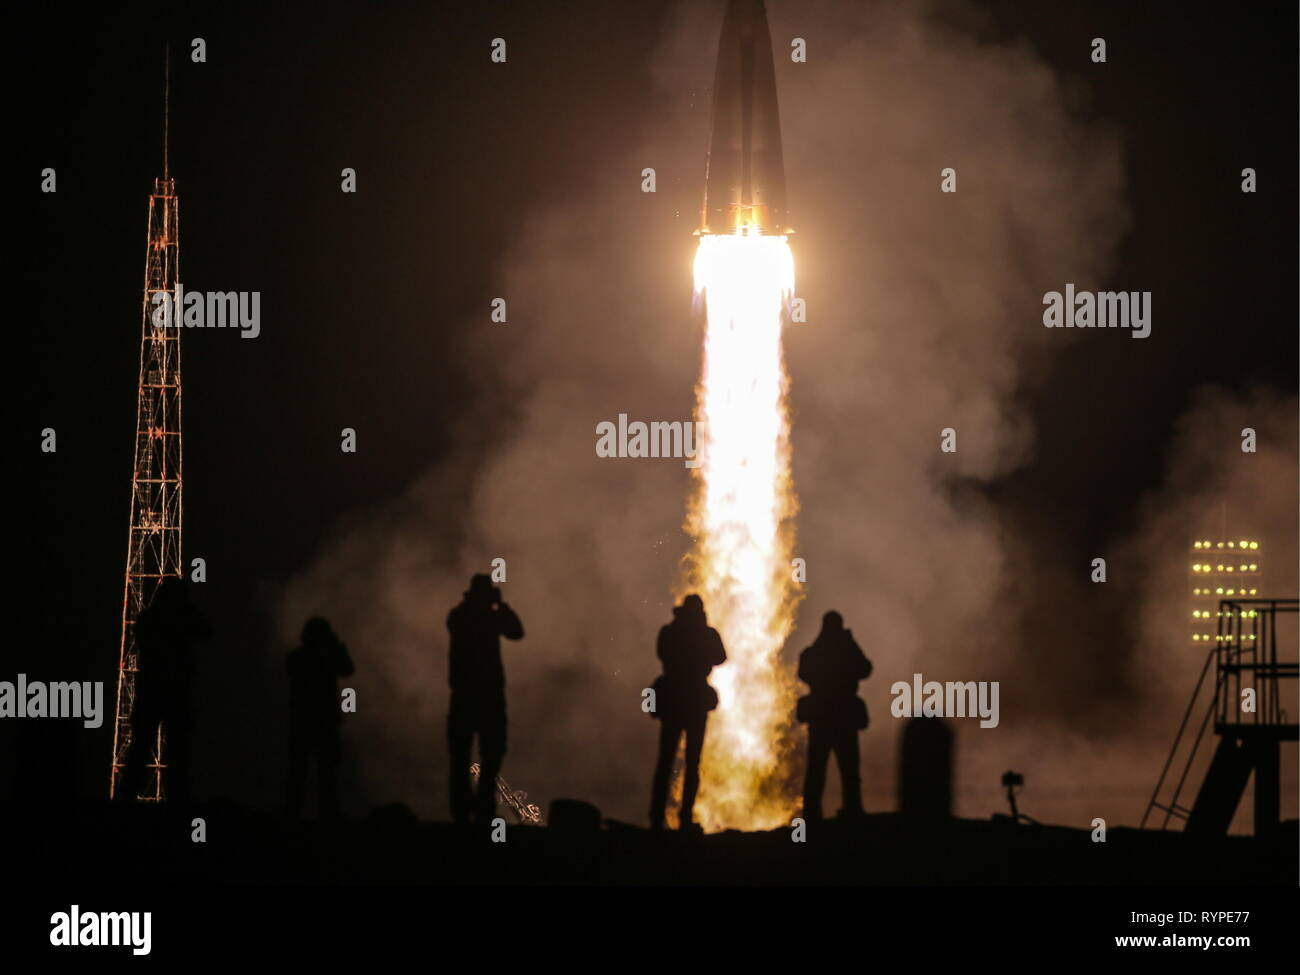 Kazakhstan. 14th Mar, 2019. KYZYLORDA REGION, KAZAKHSTAN - MARCH 14, 2019: A Soyuz-FG rocket booster carrying the Soyuz MS-12 spacecraft with Roscosmos cosmonaut Alexei Ovchinin, NASA astronauts Nick Hague and Christina H. Koch of the ISS Expedition 59/60 prime crew aboard lifts off to the International Space Station (ISS) from the Baikonur Cosmodrome. Sergei Savostyanov/TASS Credit: ITAR-TASS News Agency/Alamy Live News - Stock Image